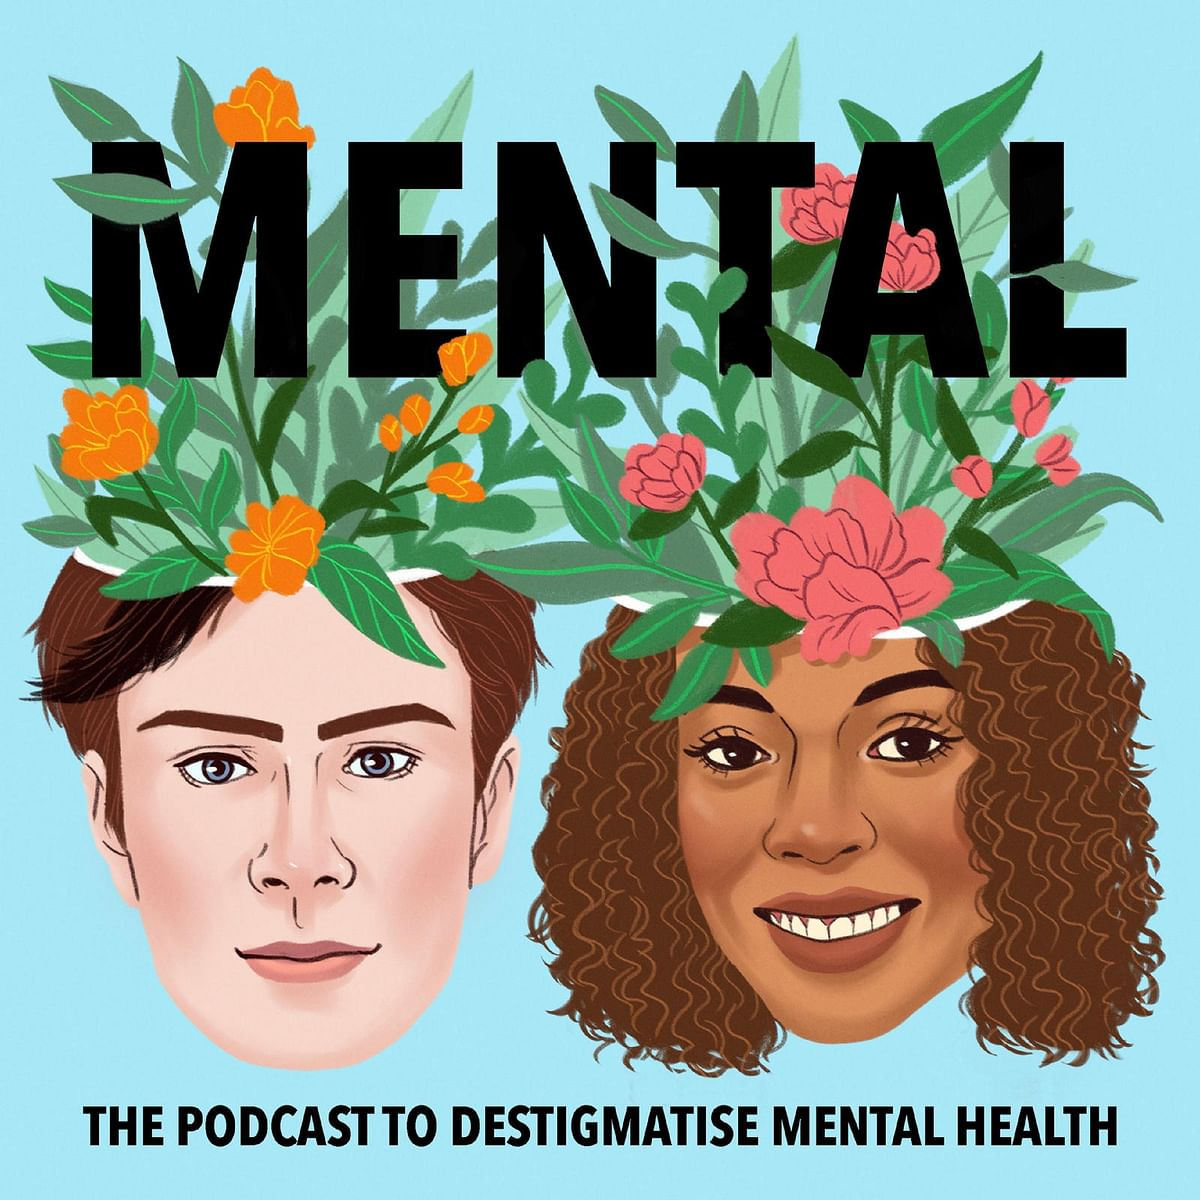 Mental- The Podcast to Destigmatise Mental Health